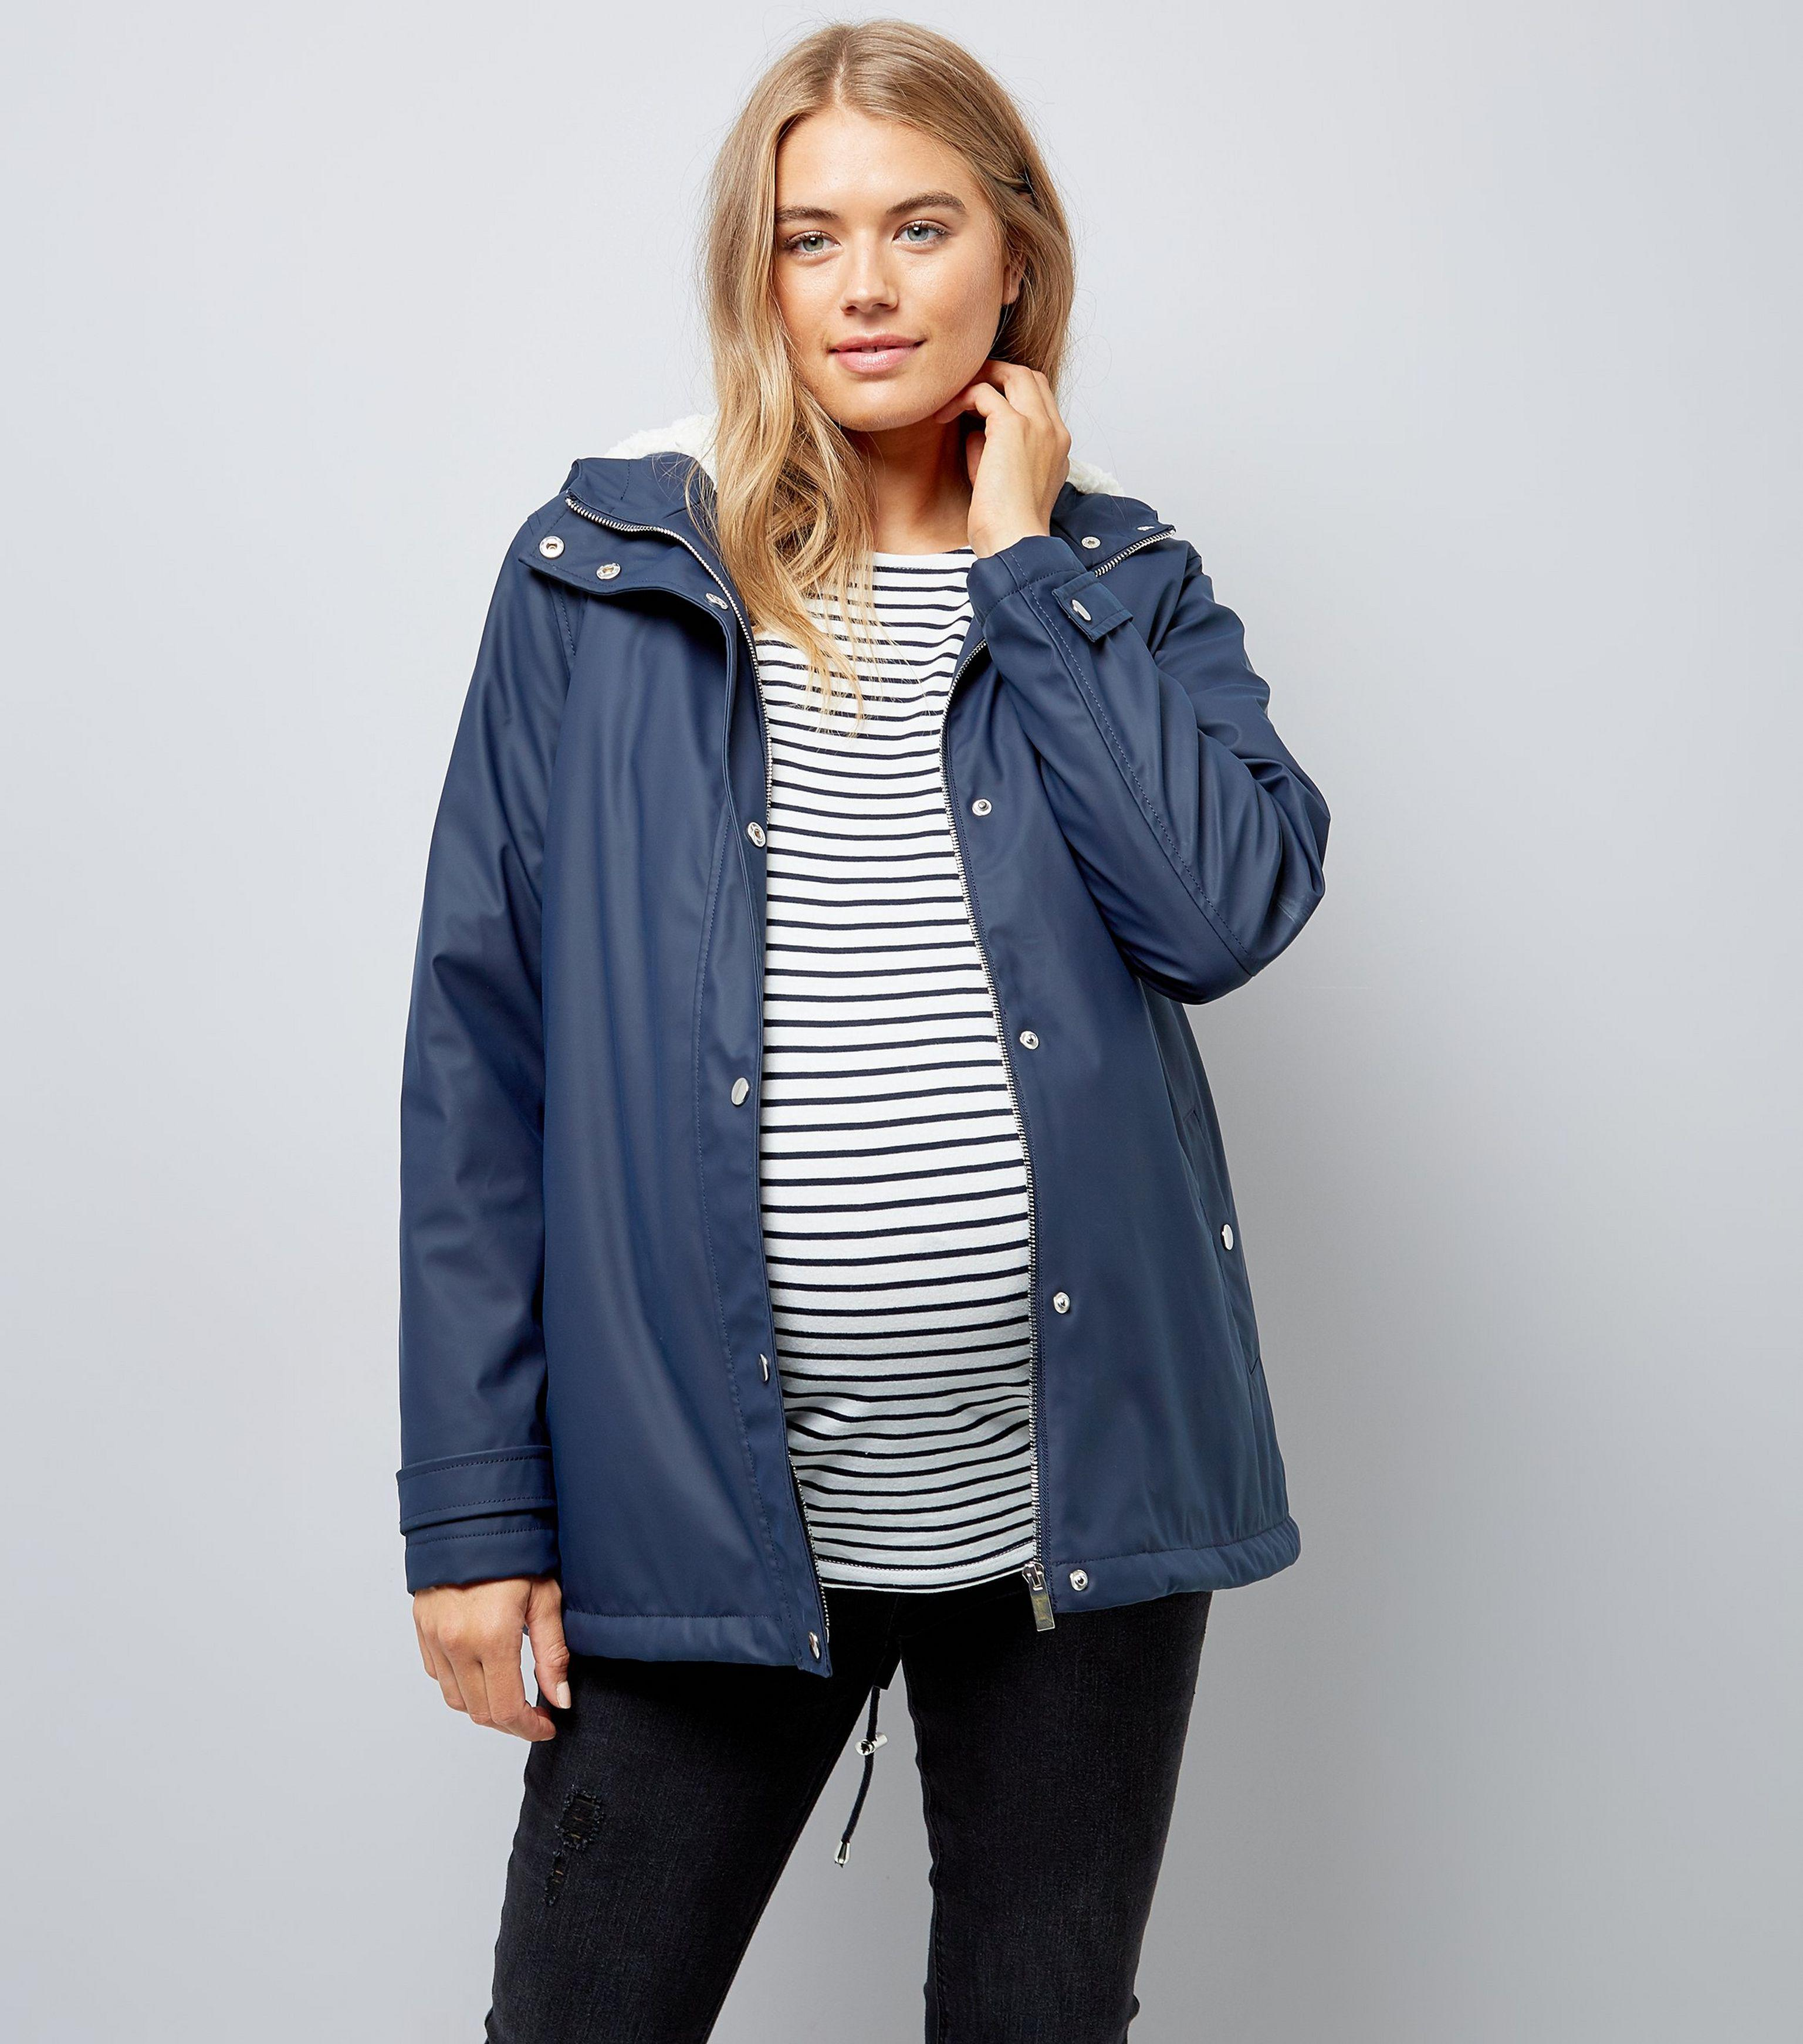 b625819b583 New Look Maternity Navy Borg Lined Anorak in Blue - Lyst